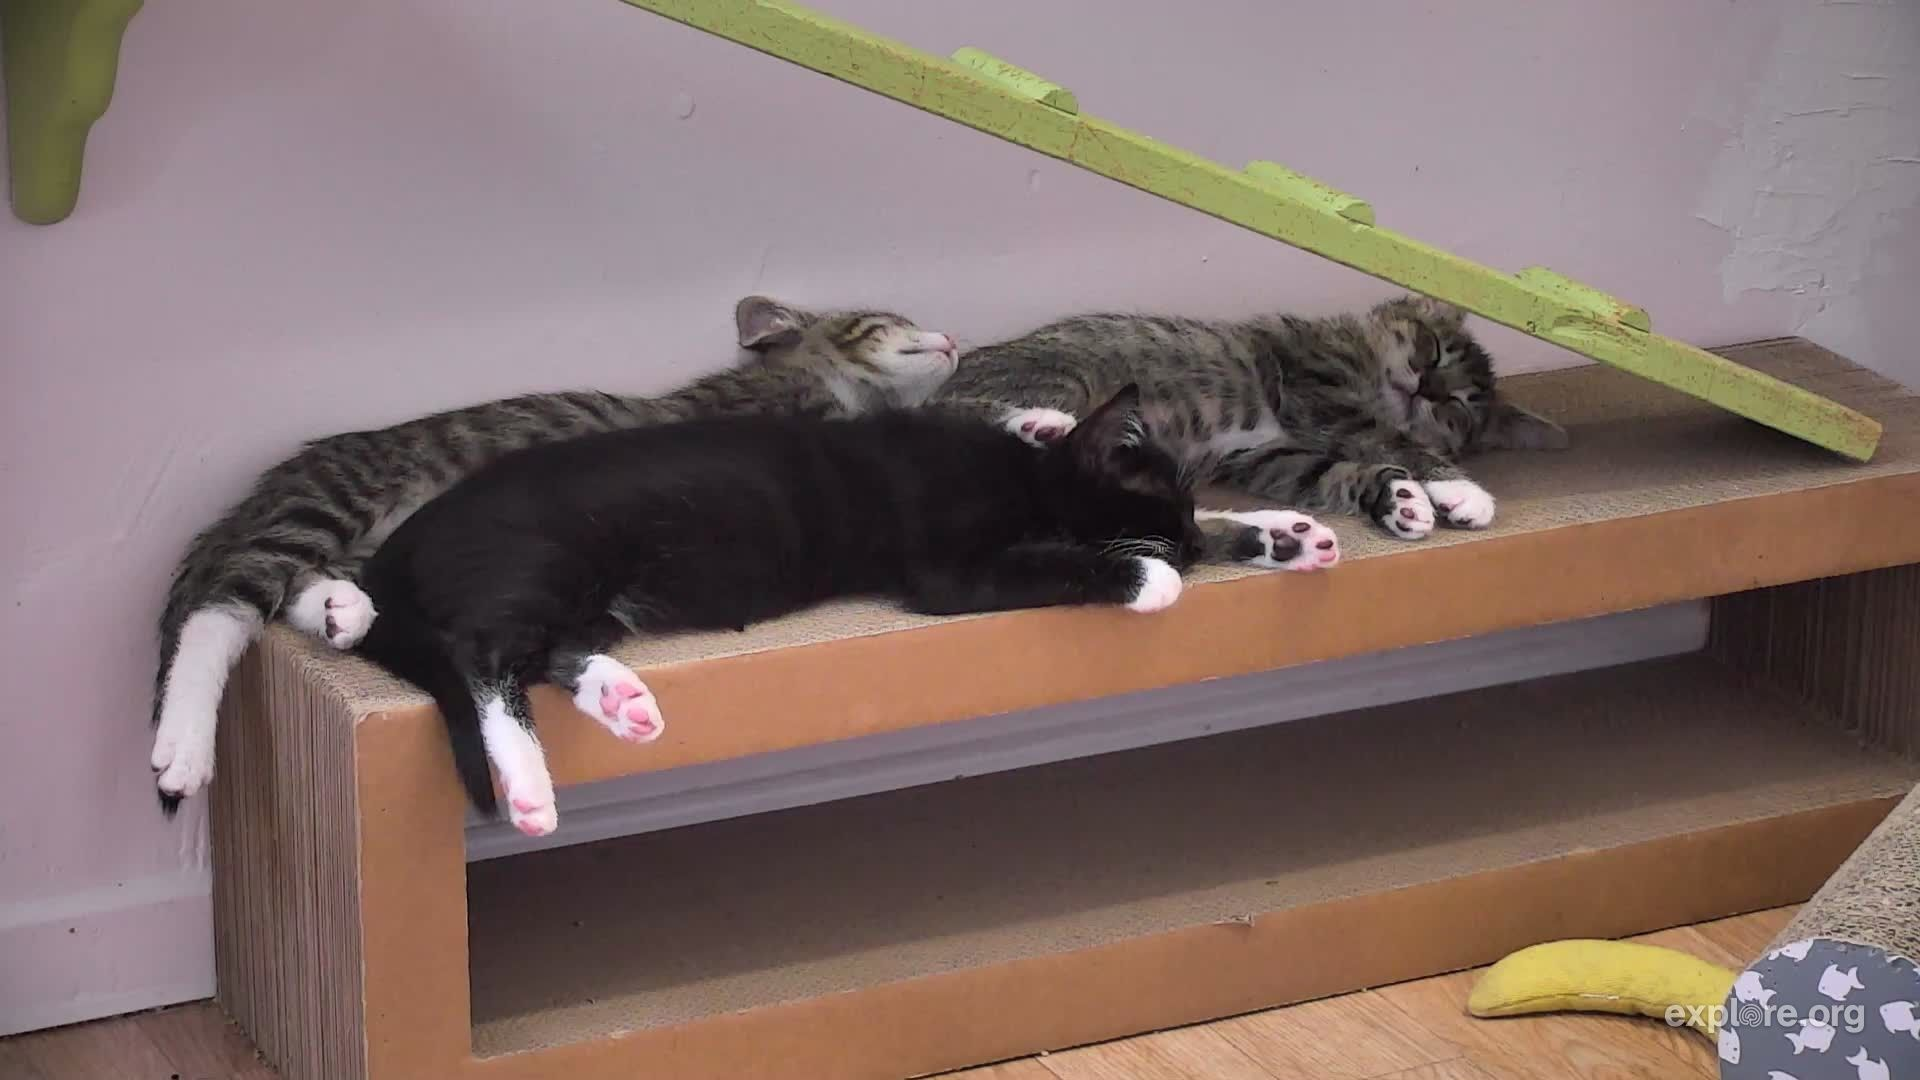 I'm watching the KittenRescue Cam on